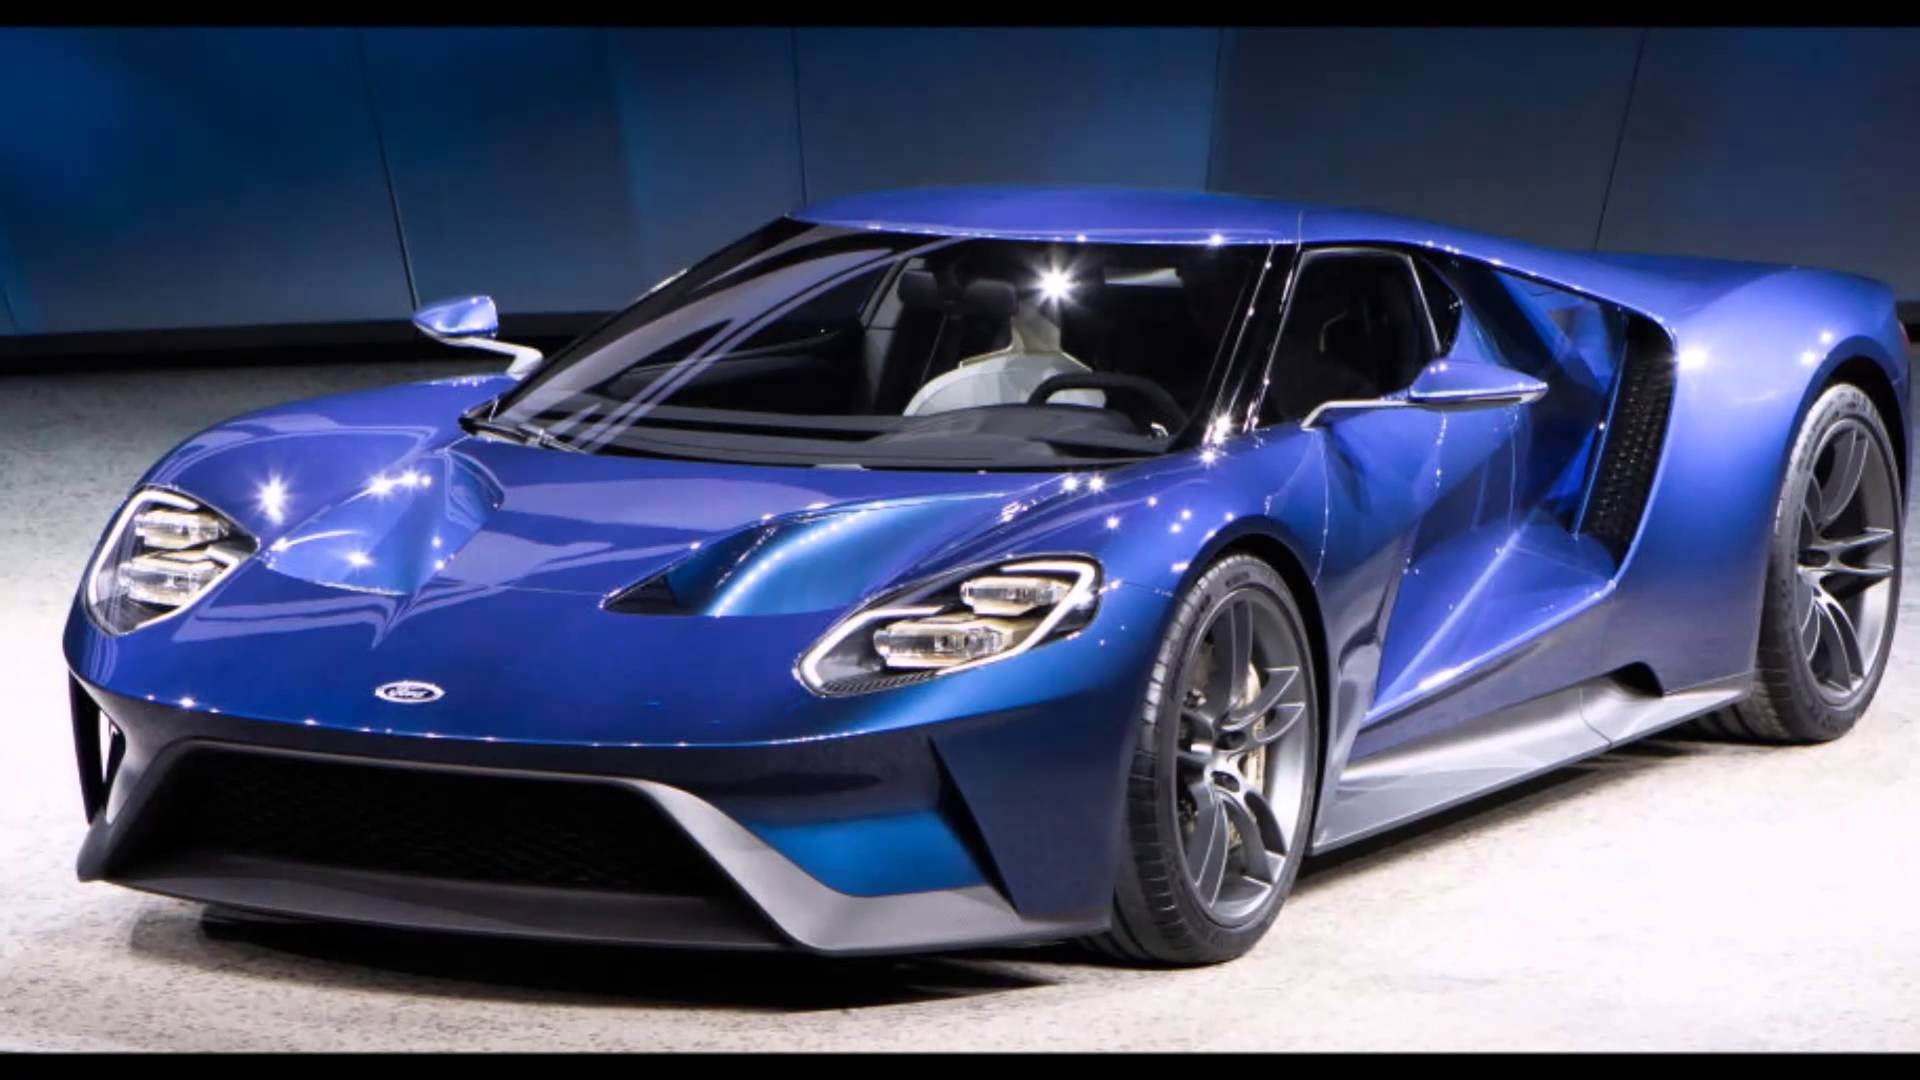 Cool Cars 2017 Wallpapers Wallpaper Cave